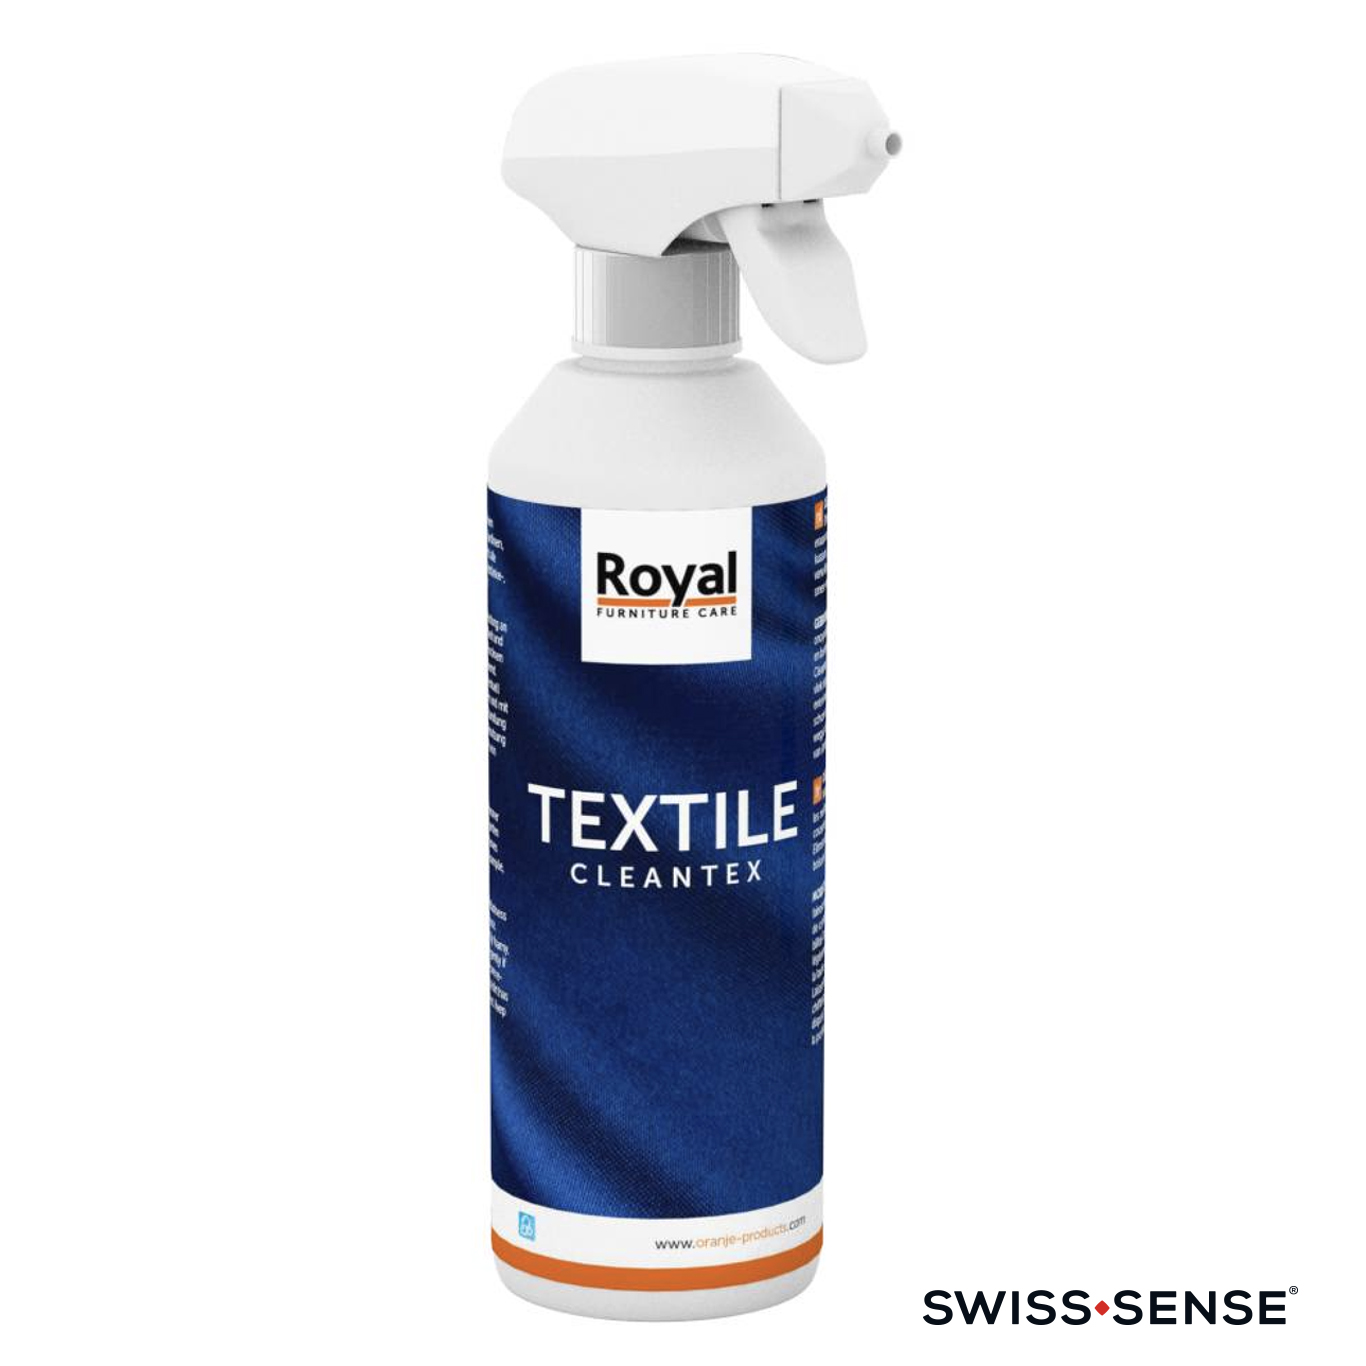 Textile Cleantex | Swiss Sense